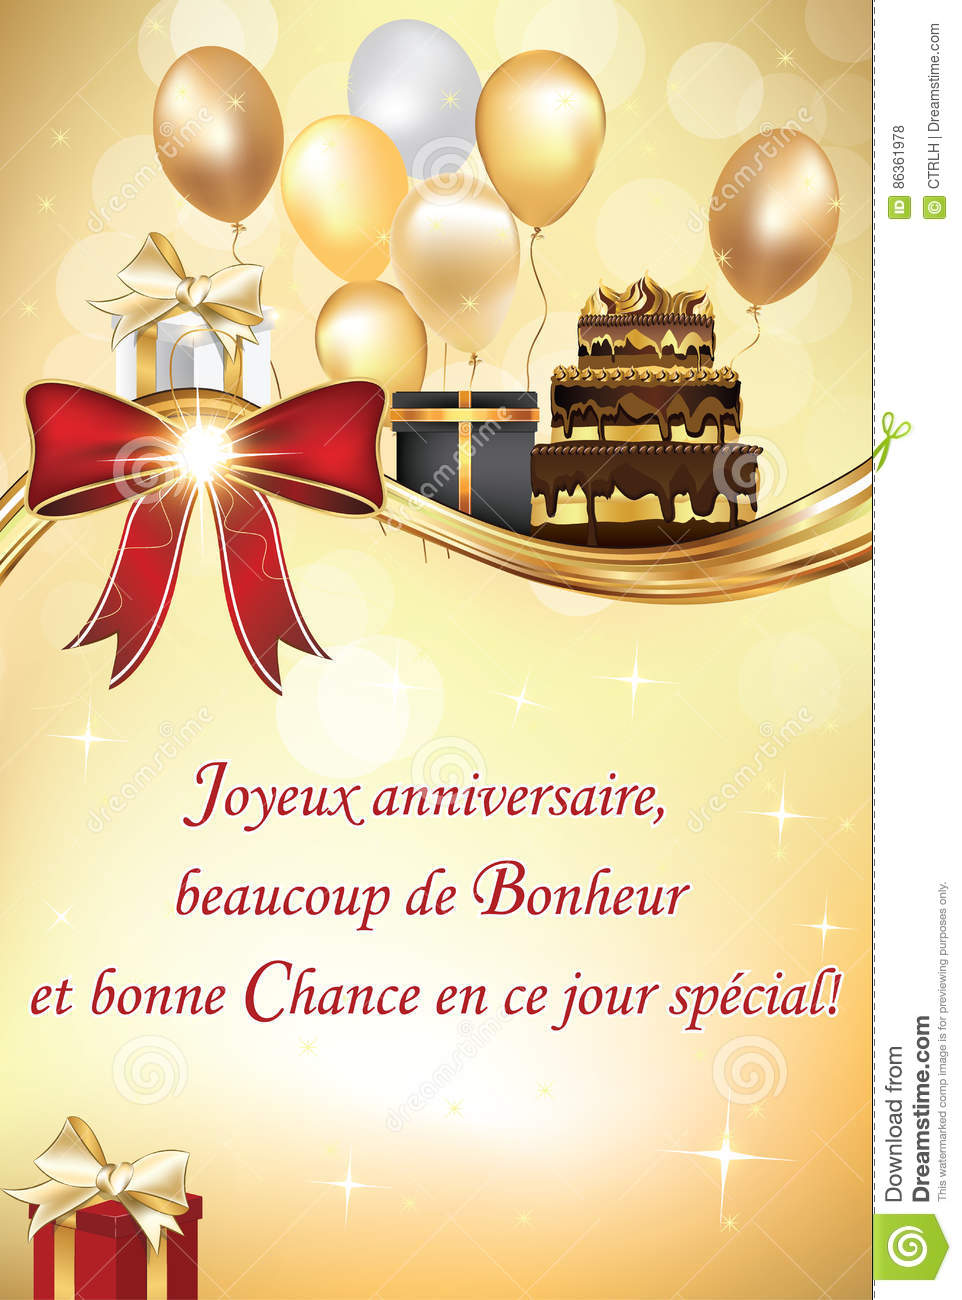 French birthday greeting card stock vector illustration of french birthday greeting card kristyandbryce Gallery